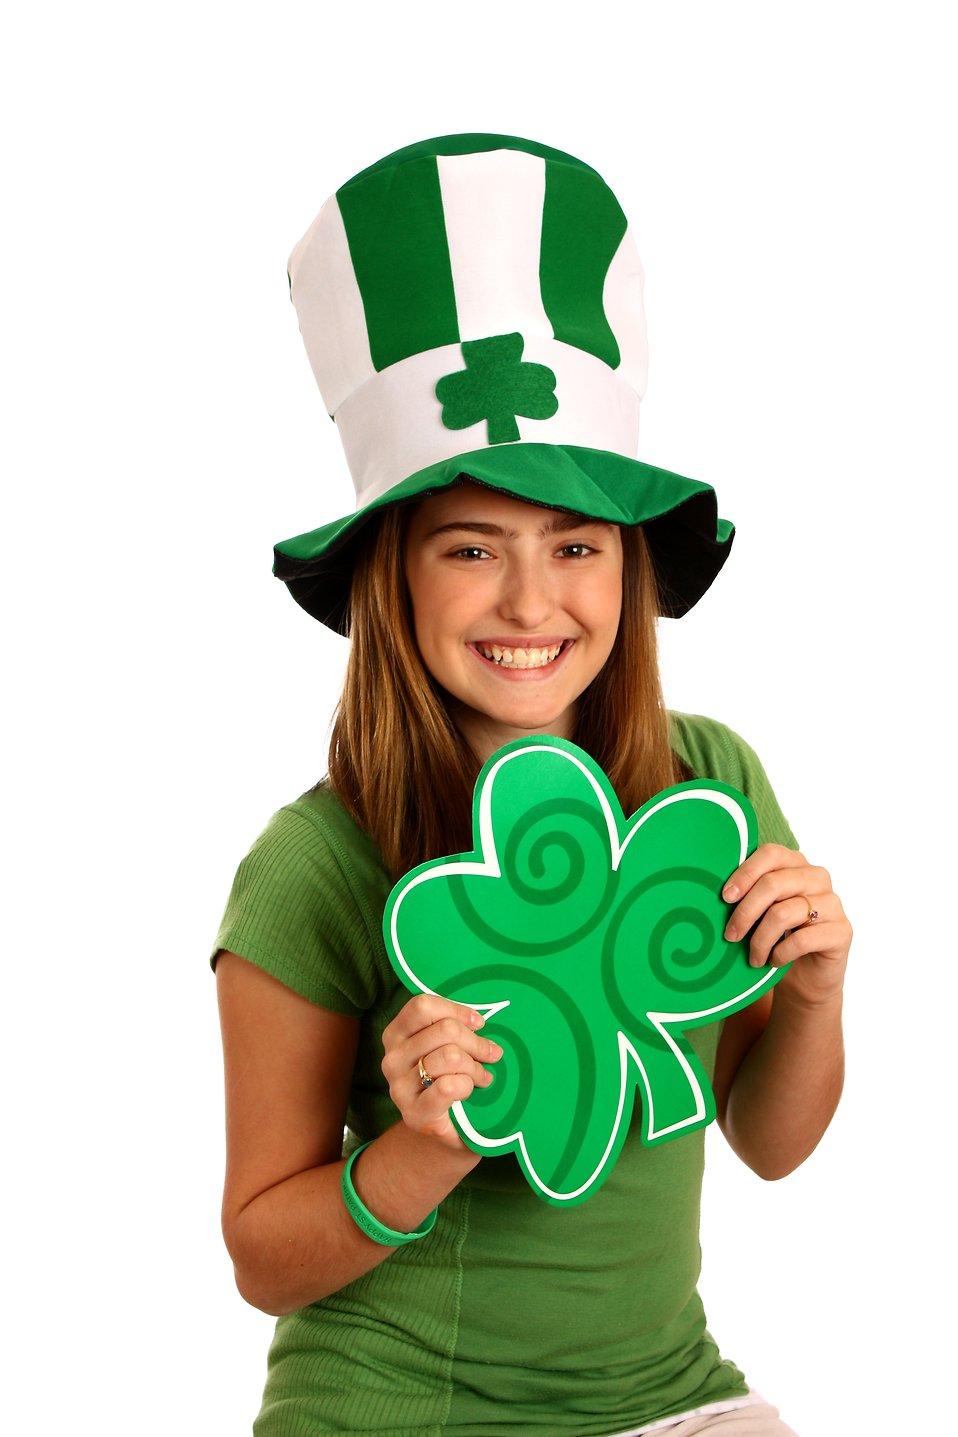 A cute young girl dressed up for Saint Patrick's Day holding a large clover : Free Stock Photo